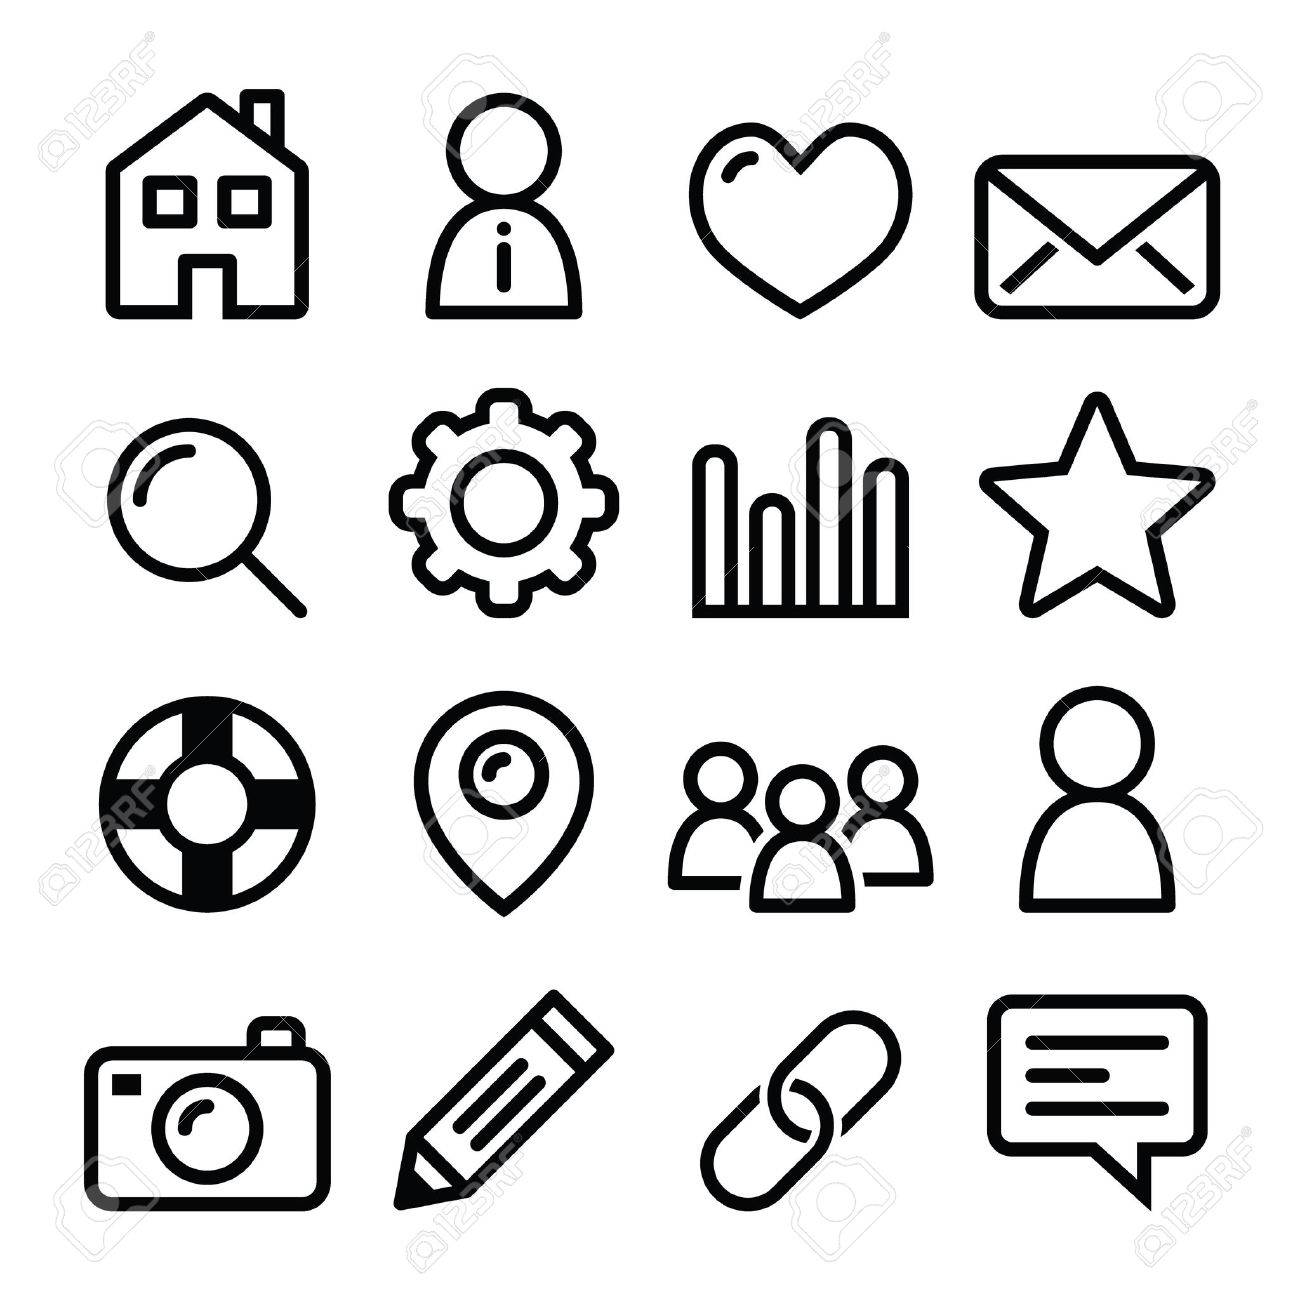 Website Menu Navigation Line Icons Home Search Email Gallery Royalty Free Cliparts Vectors And Stock Illustration Image 35118768